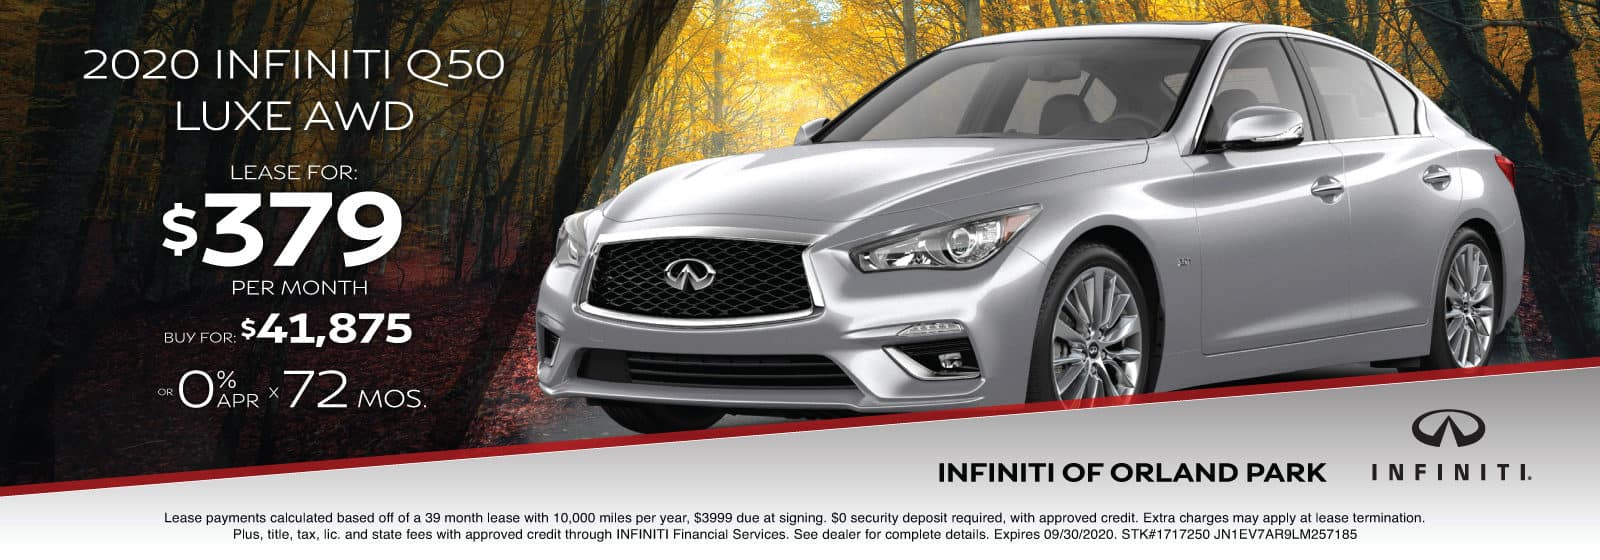 Lease a new 2020 Q50 for $379/month